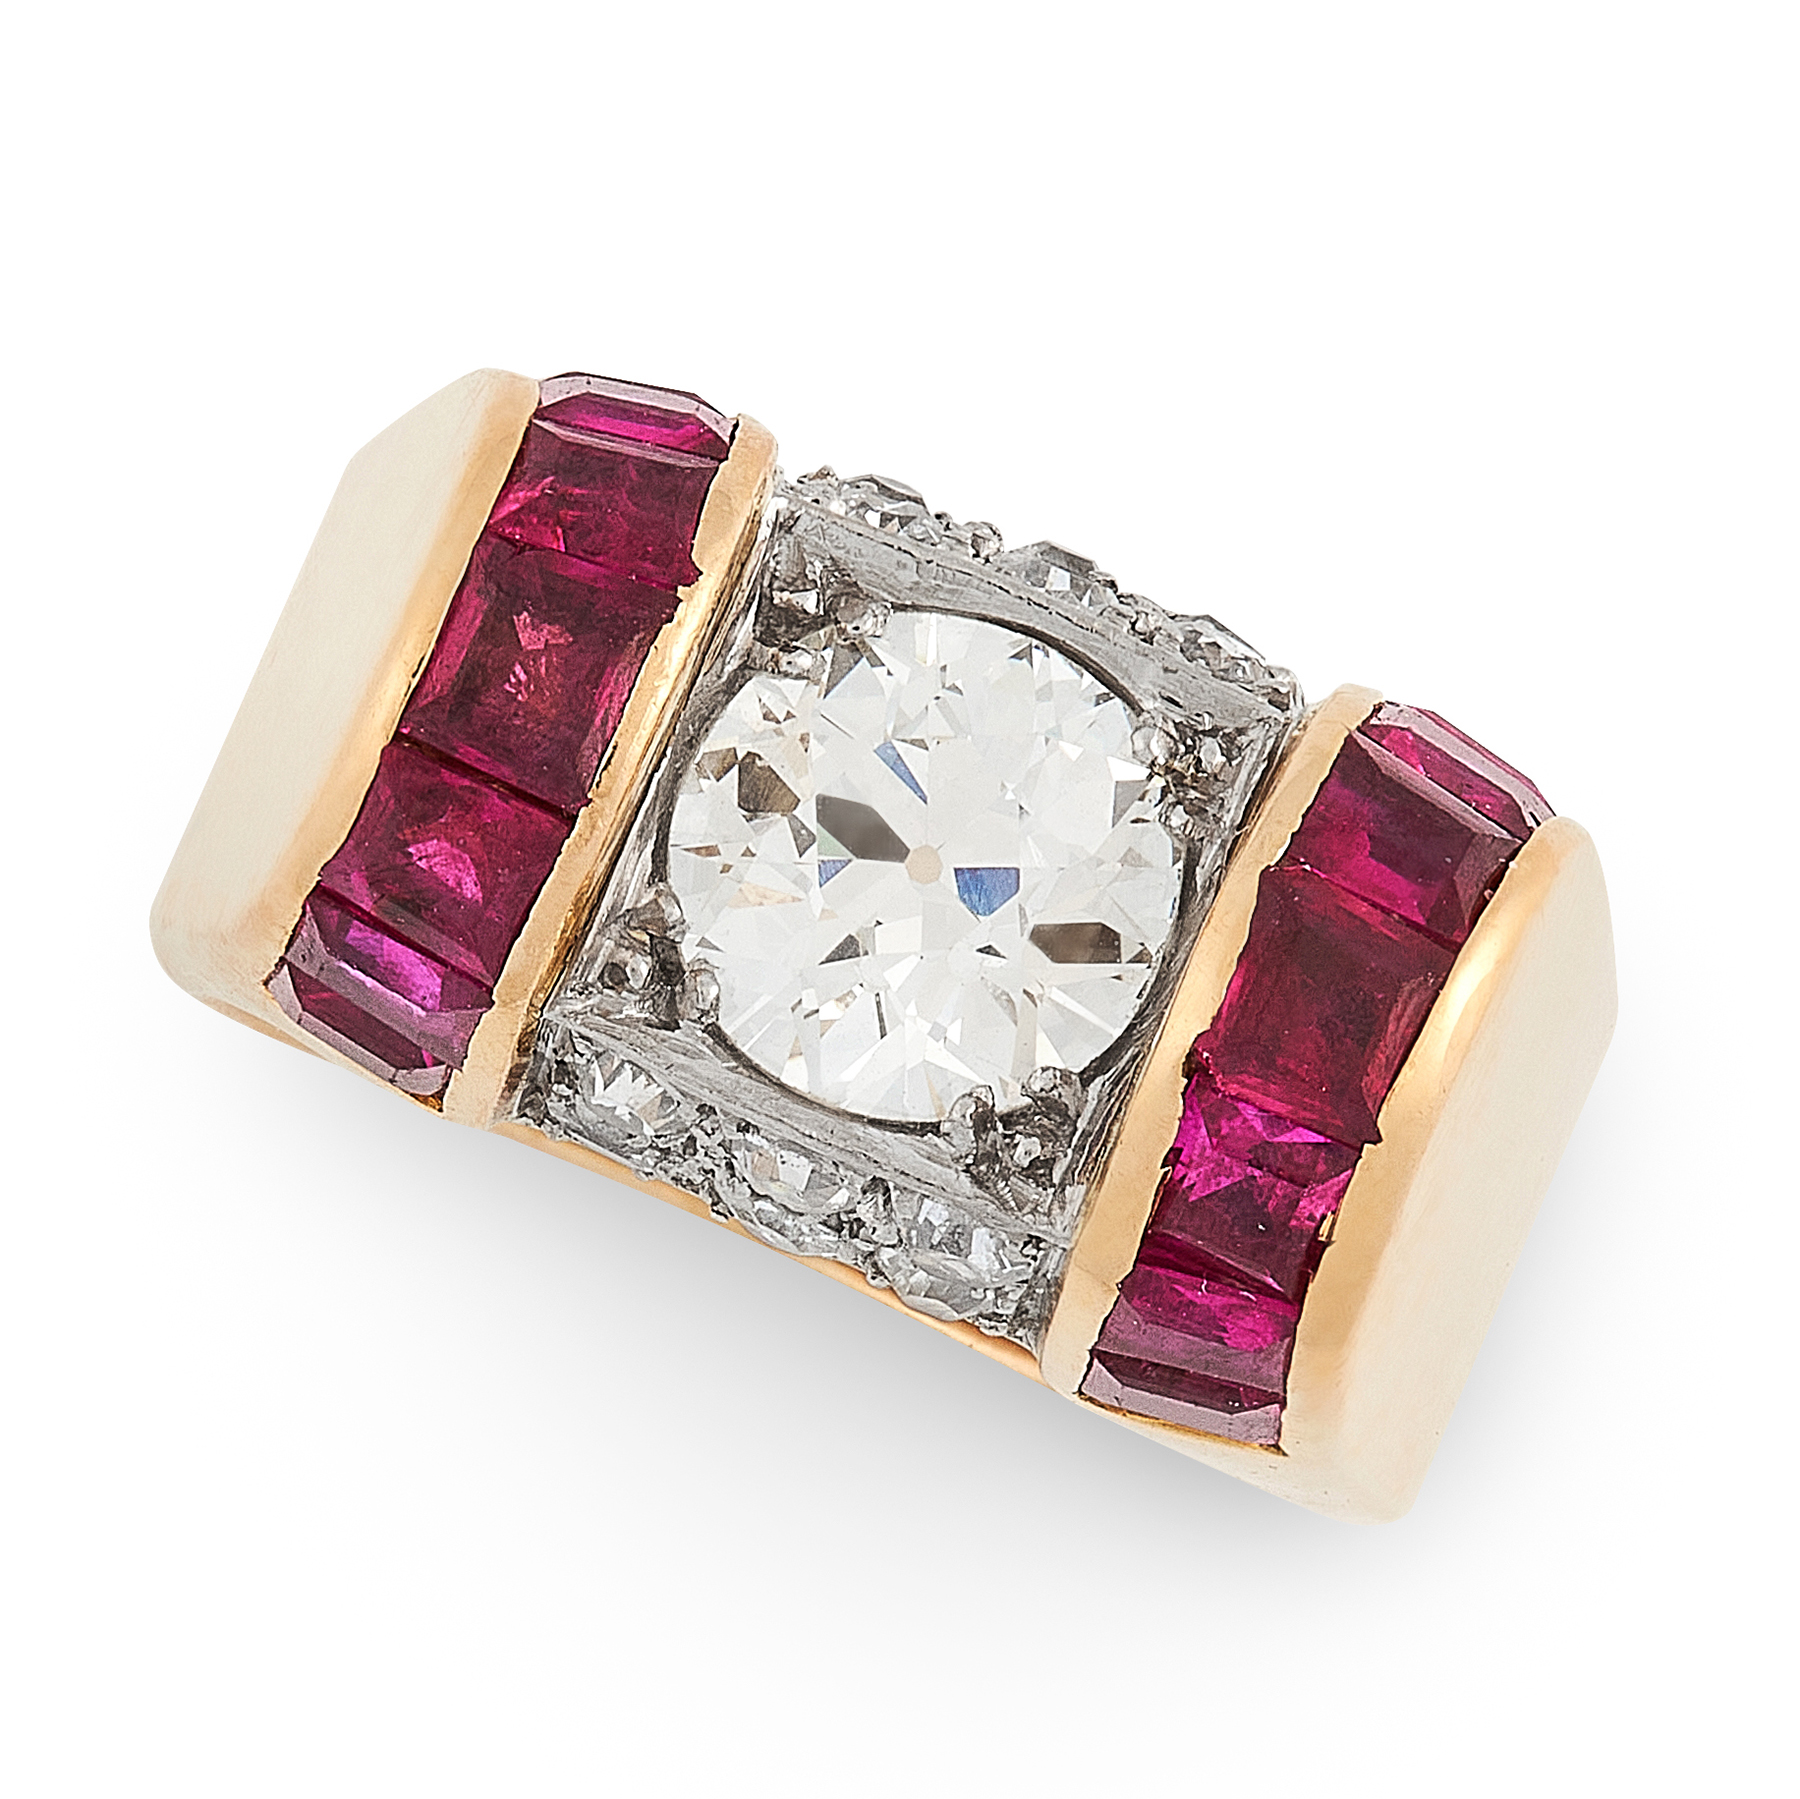 A RETRO DIAMOND AND RUBY RING CIRCA 1945 in 18ct yellow gold, set with an old cut diamond of 1.38